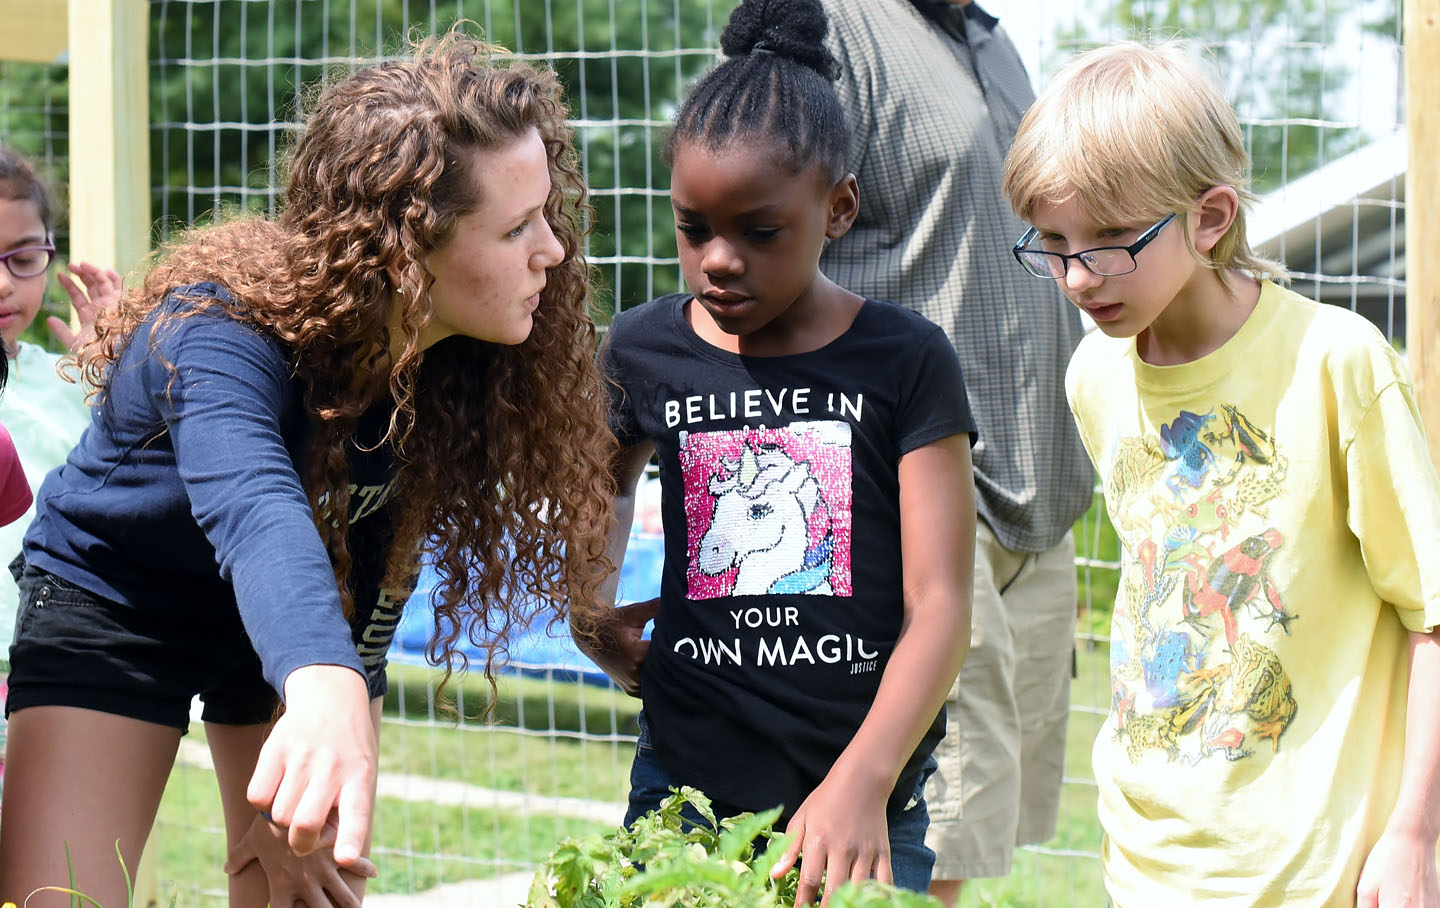 Penn State Behrend student works with students in campus garden